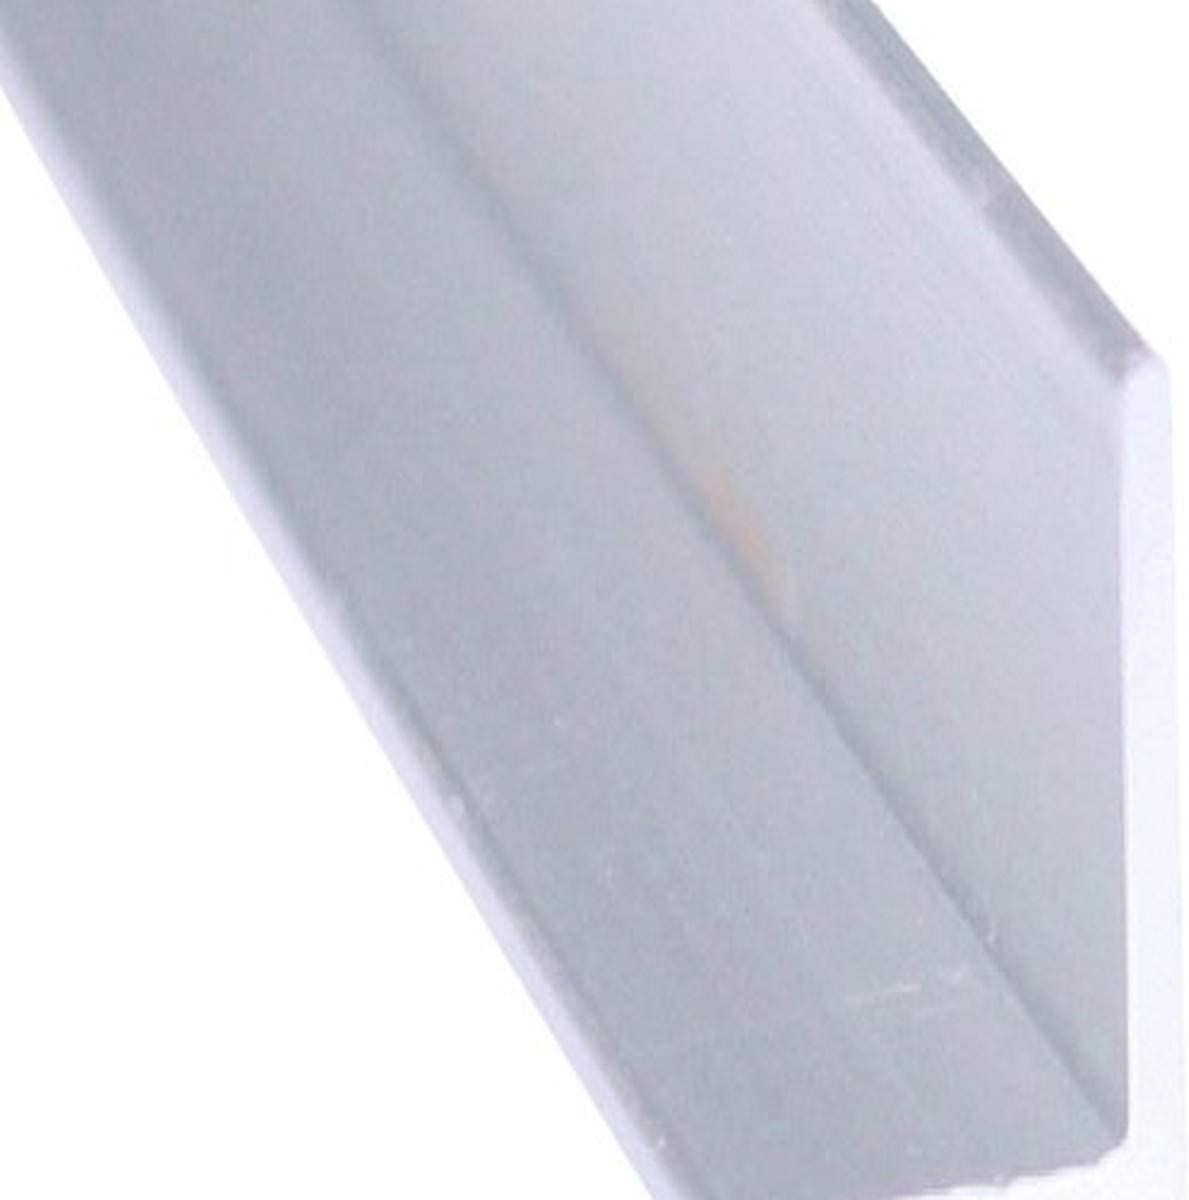 M-D 5 Max 74% OFF ☆ very popular Building Products 62125 3 by 1 16-Inch 4-Inch